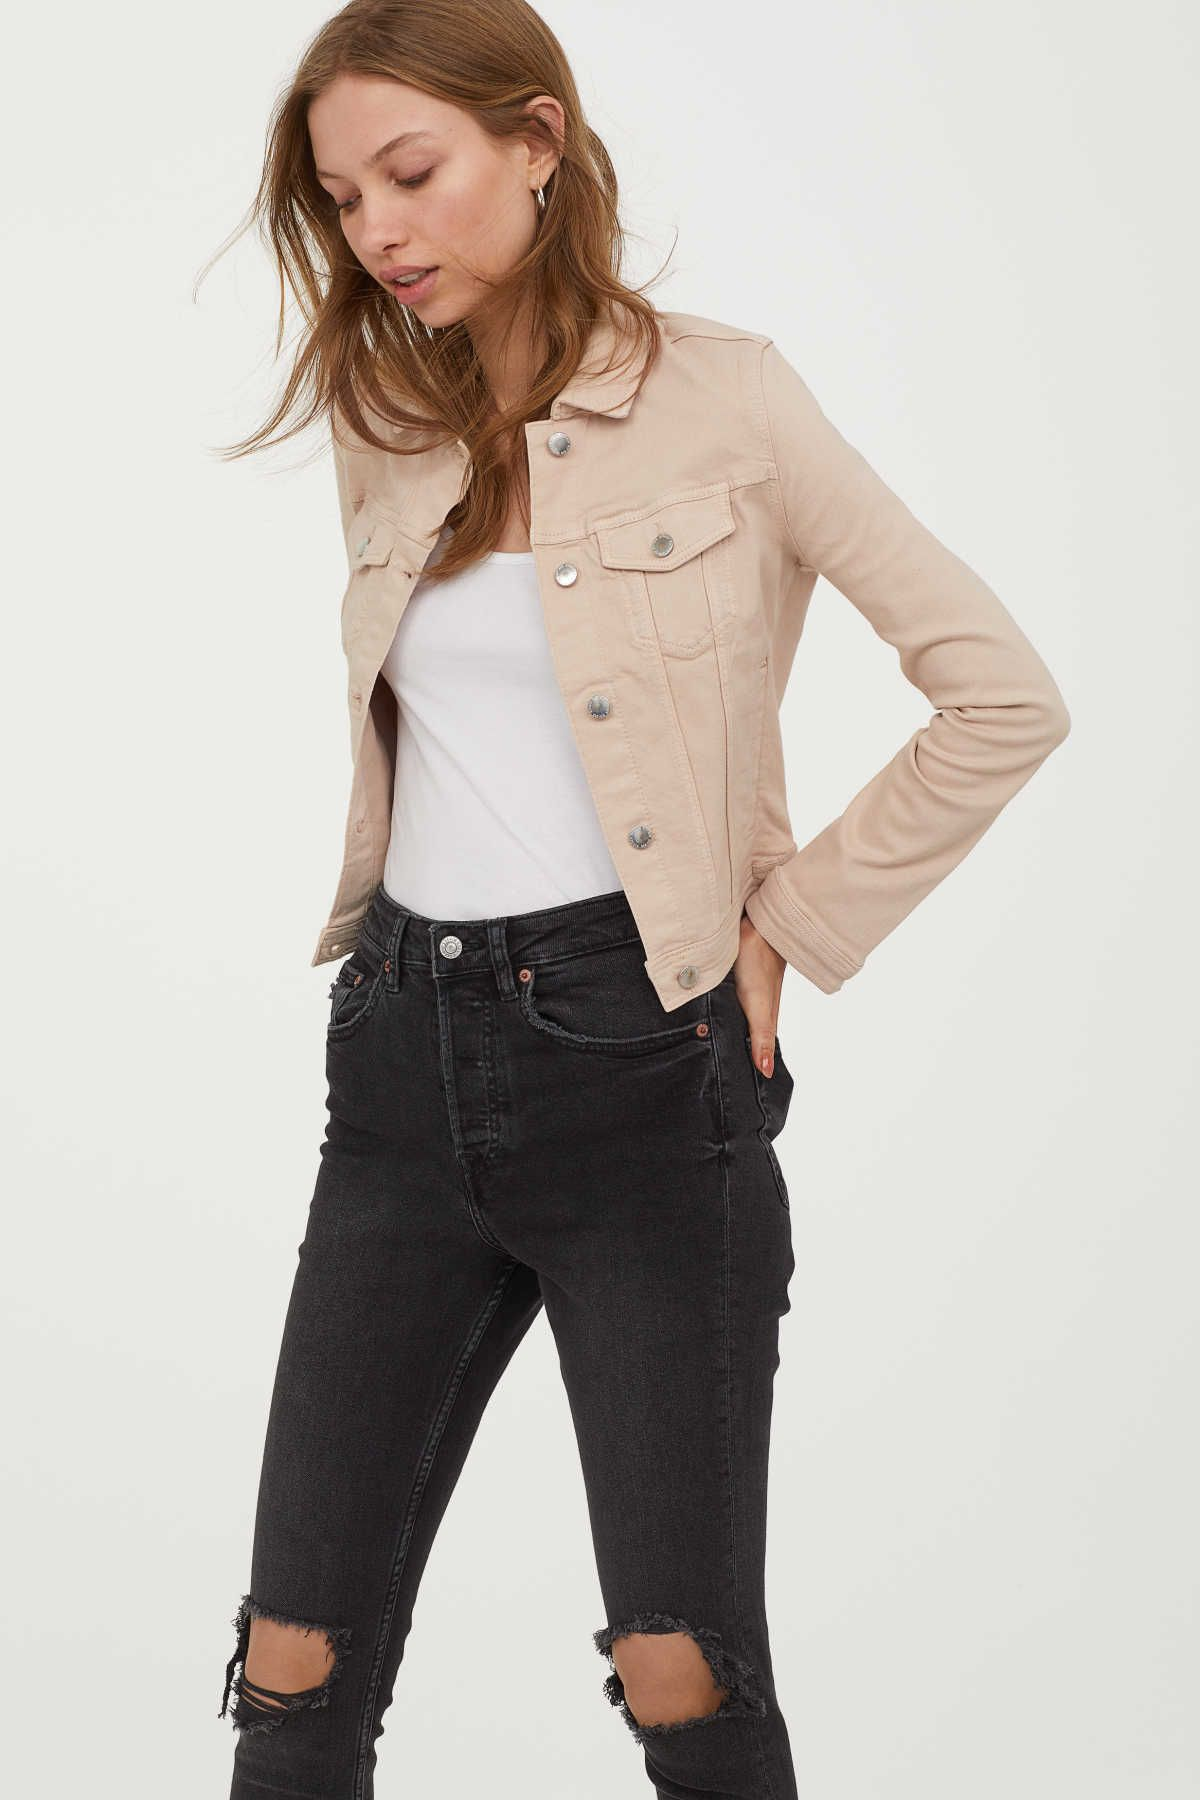 Light Beige Jacket In Washed Denim Collar Buttons At Front And At Cuffs And Adjustable Tab At Sides In 2021 Denim Jacket Women Beige Jacket Denim Jacket With Dress [ 1800 x 1200 Pixel ]